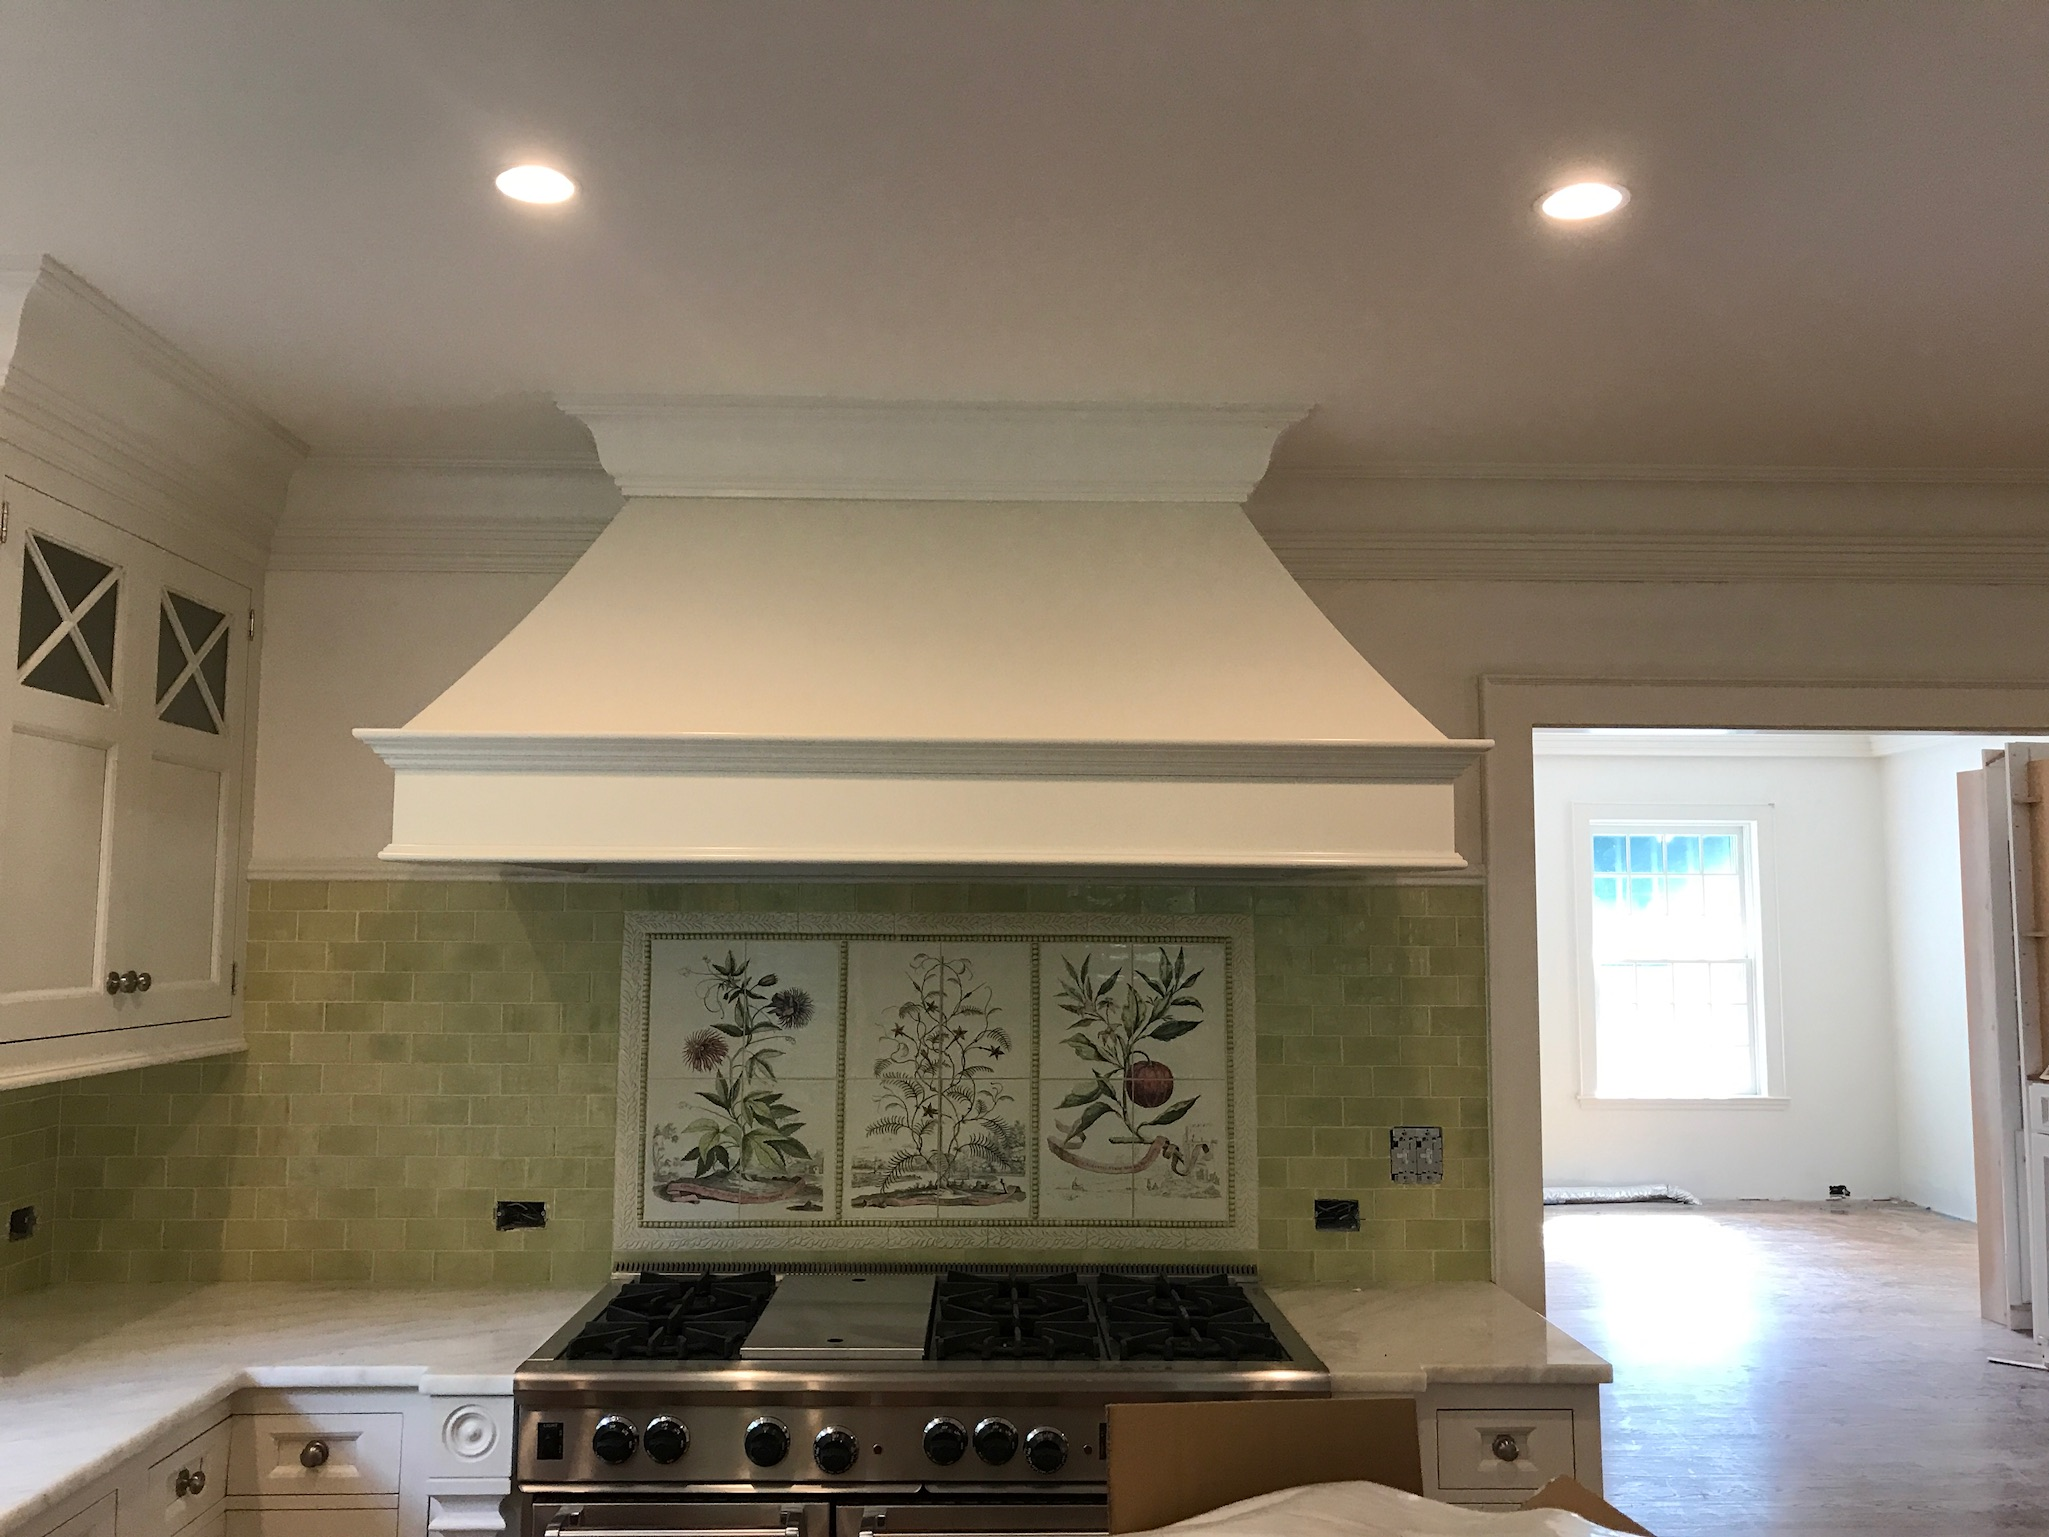 kitchen-hood-before-by-liz-caan-interior-design-COUNTRY-Renovation-and-decoration-for-a-young-family